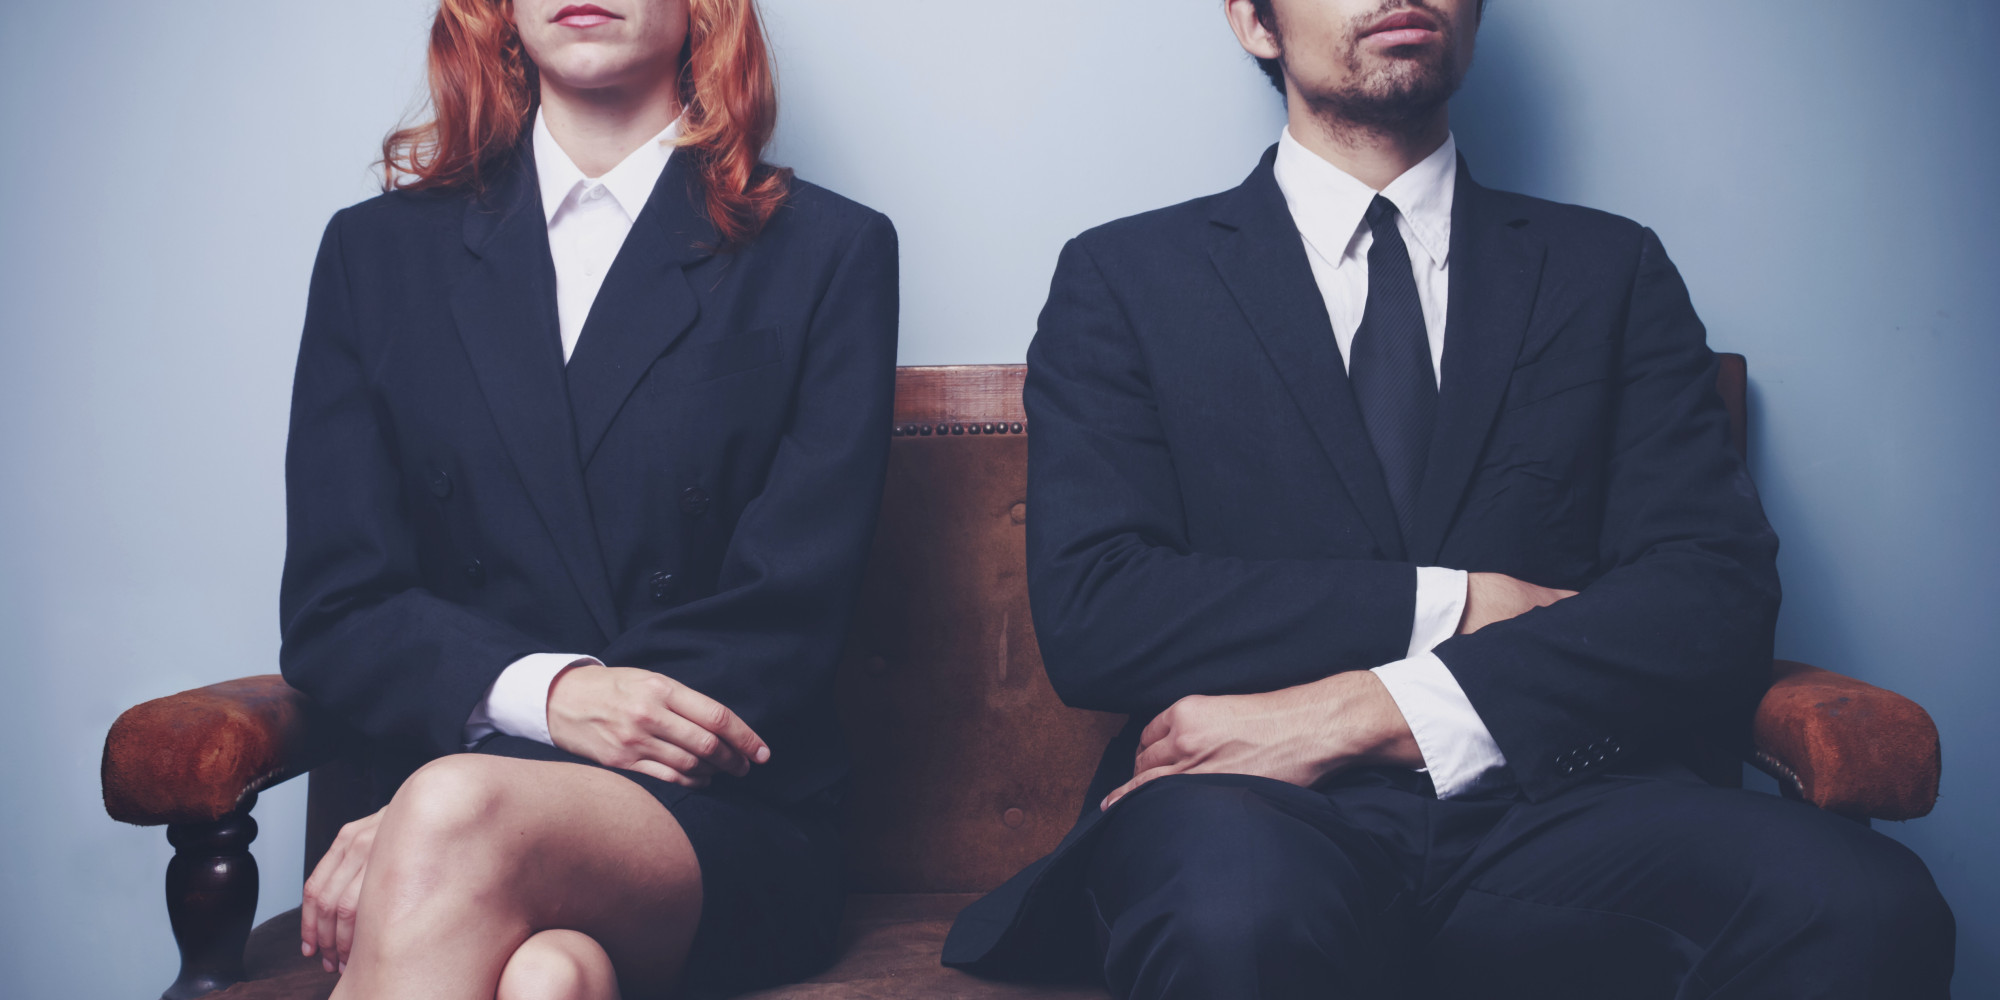 Know What to Search For in a Divorce Attorney